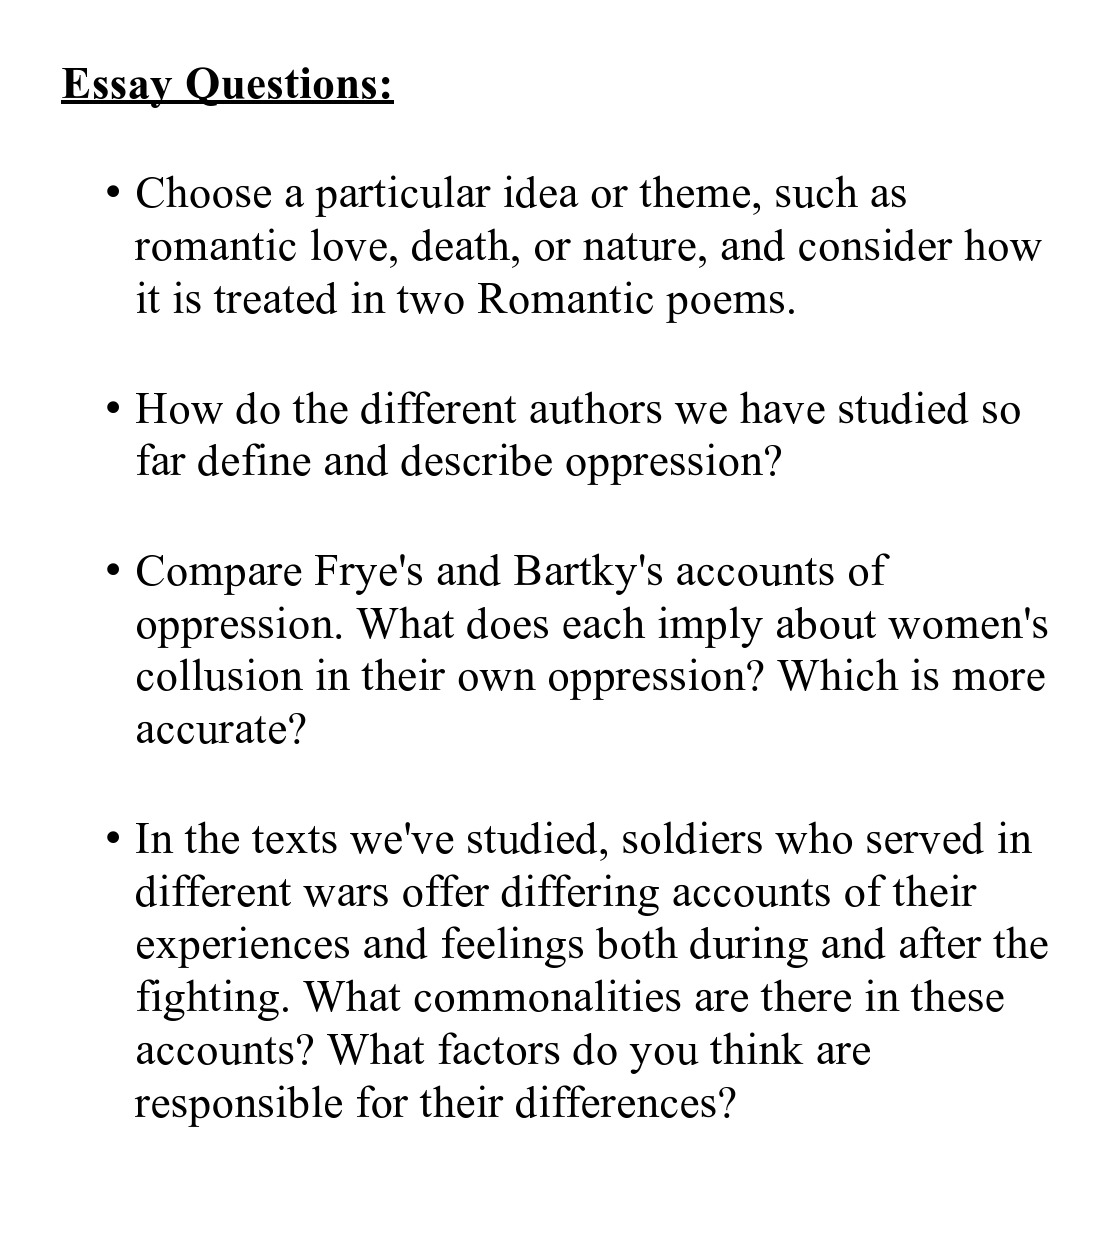 012 Essay Example Questions How To Write An On Fantastic Theme A In Literature The Of Poem Novel Full